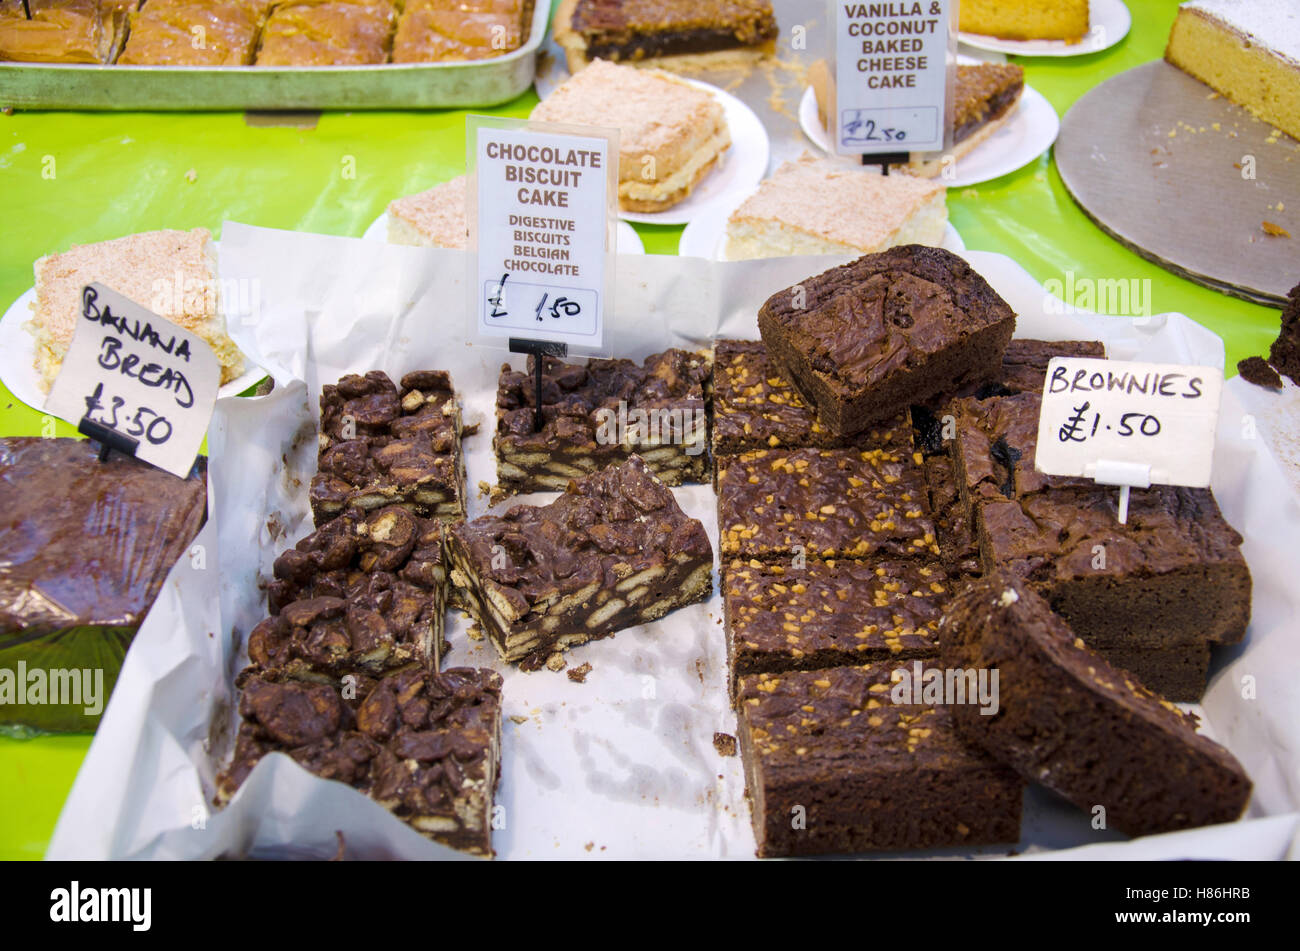 Fair Trade Cakes And Brownies